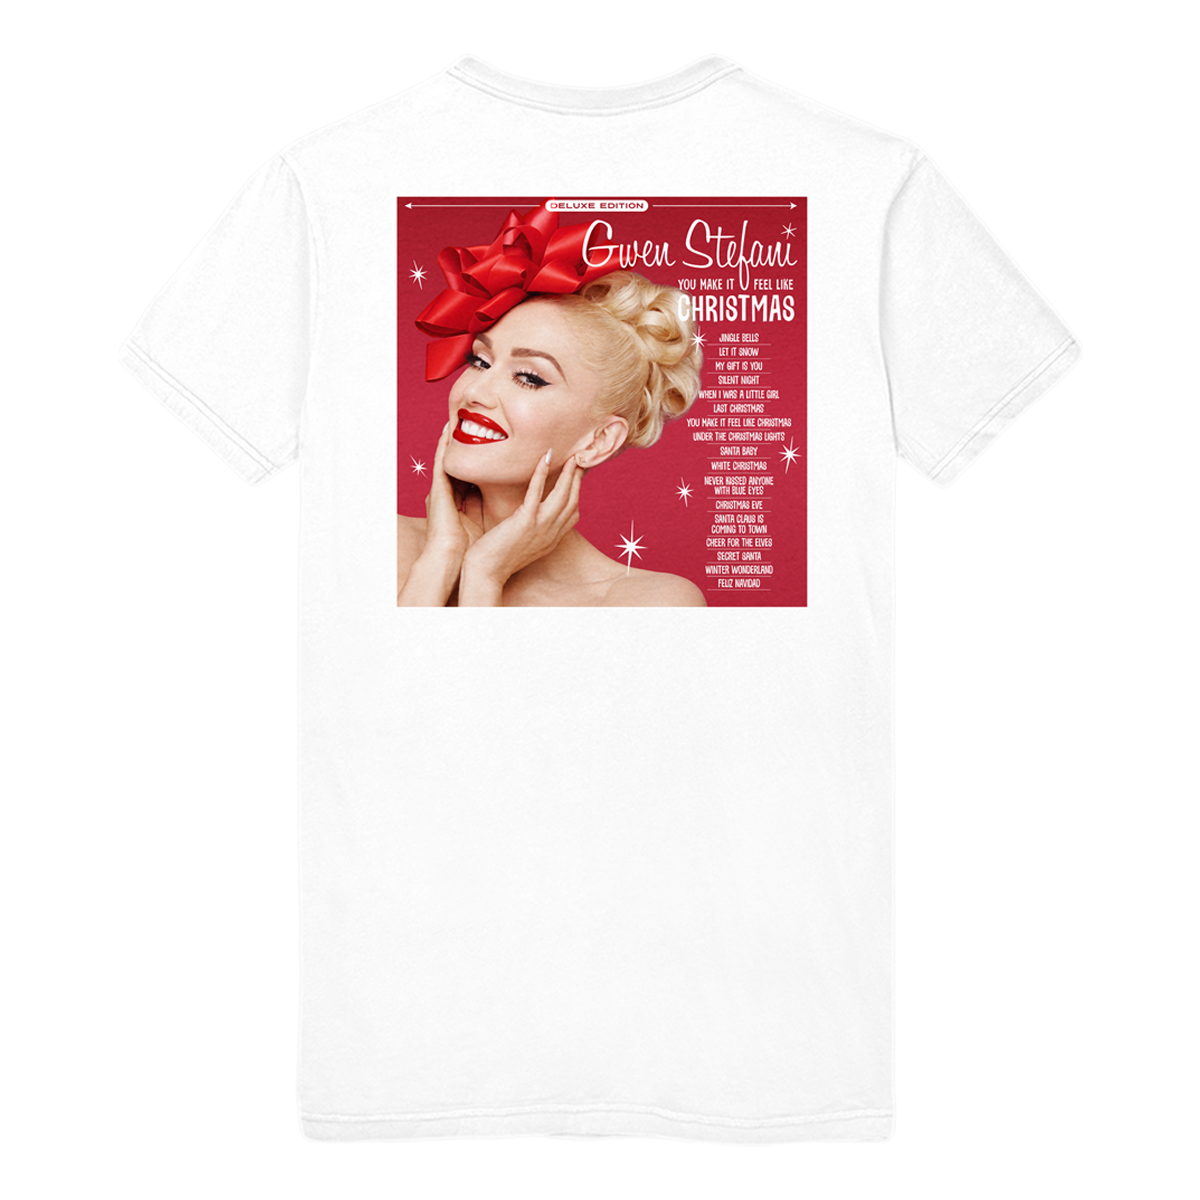 Exclusive Christmas Album Tee - Gwen Stefani